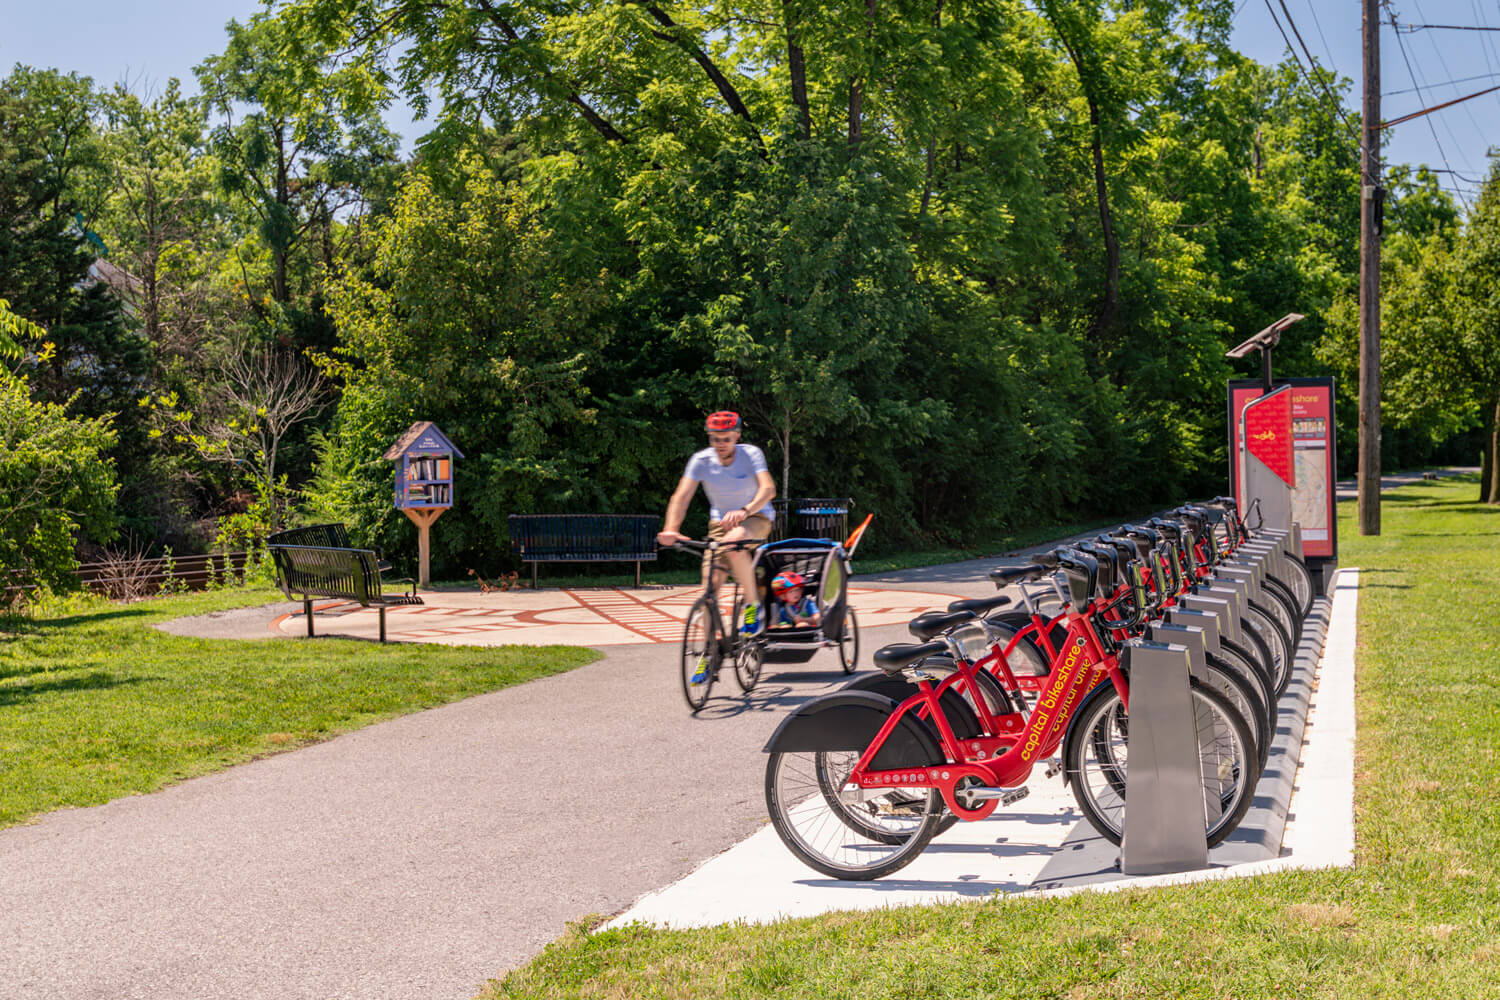 Rent a bike from Capital Bikeshare and go explore